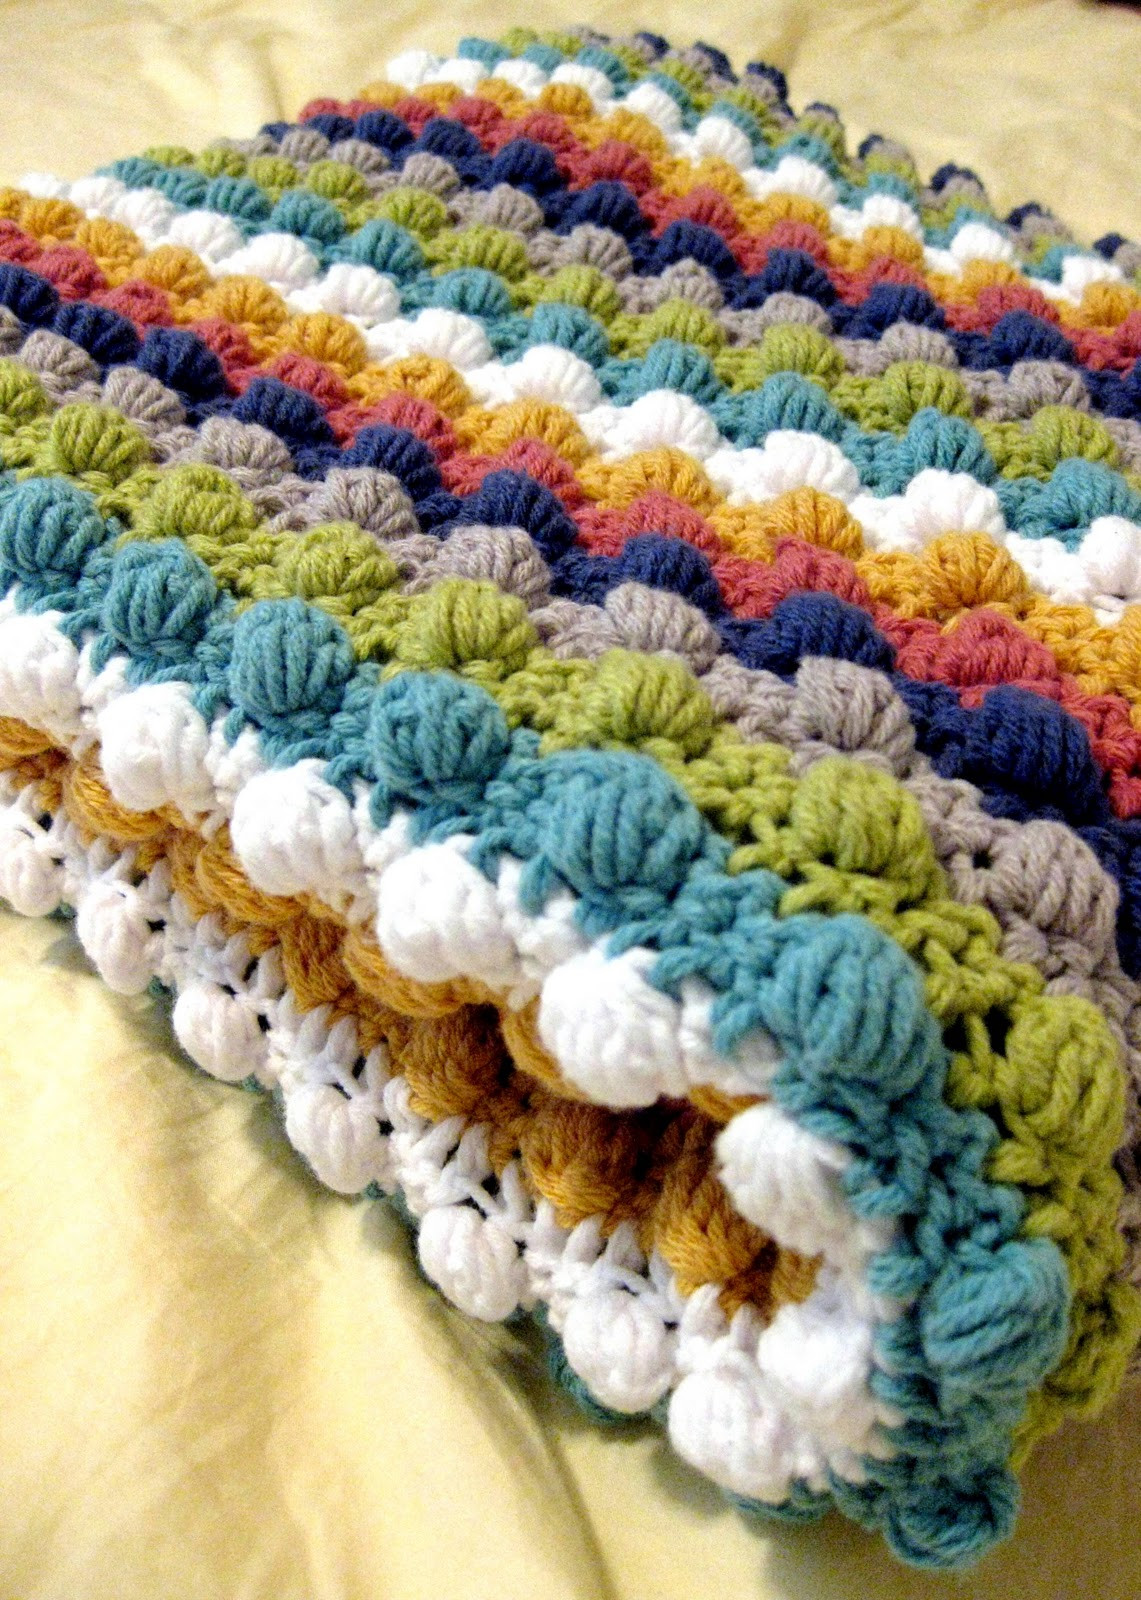 Free Crochet Baby Afghan Patterns Luxury 25 Free Baby Blanket Crochet Patterns – Cute Diy Projects Of Superb 46 Photos Free Crochet Baby Afghan Patterns